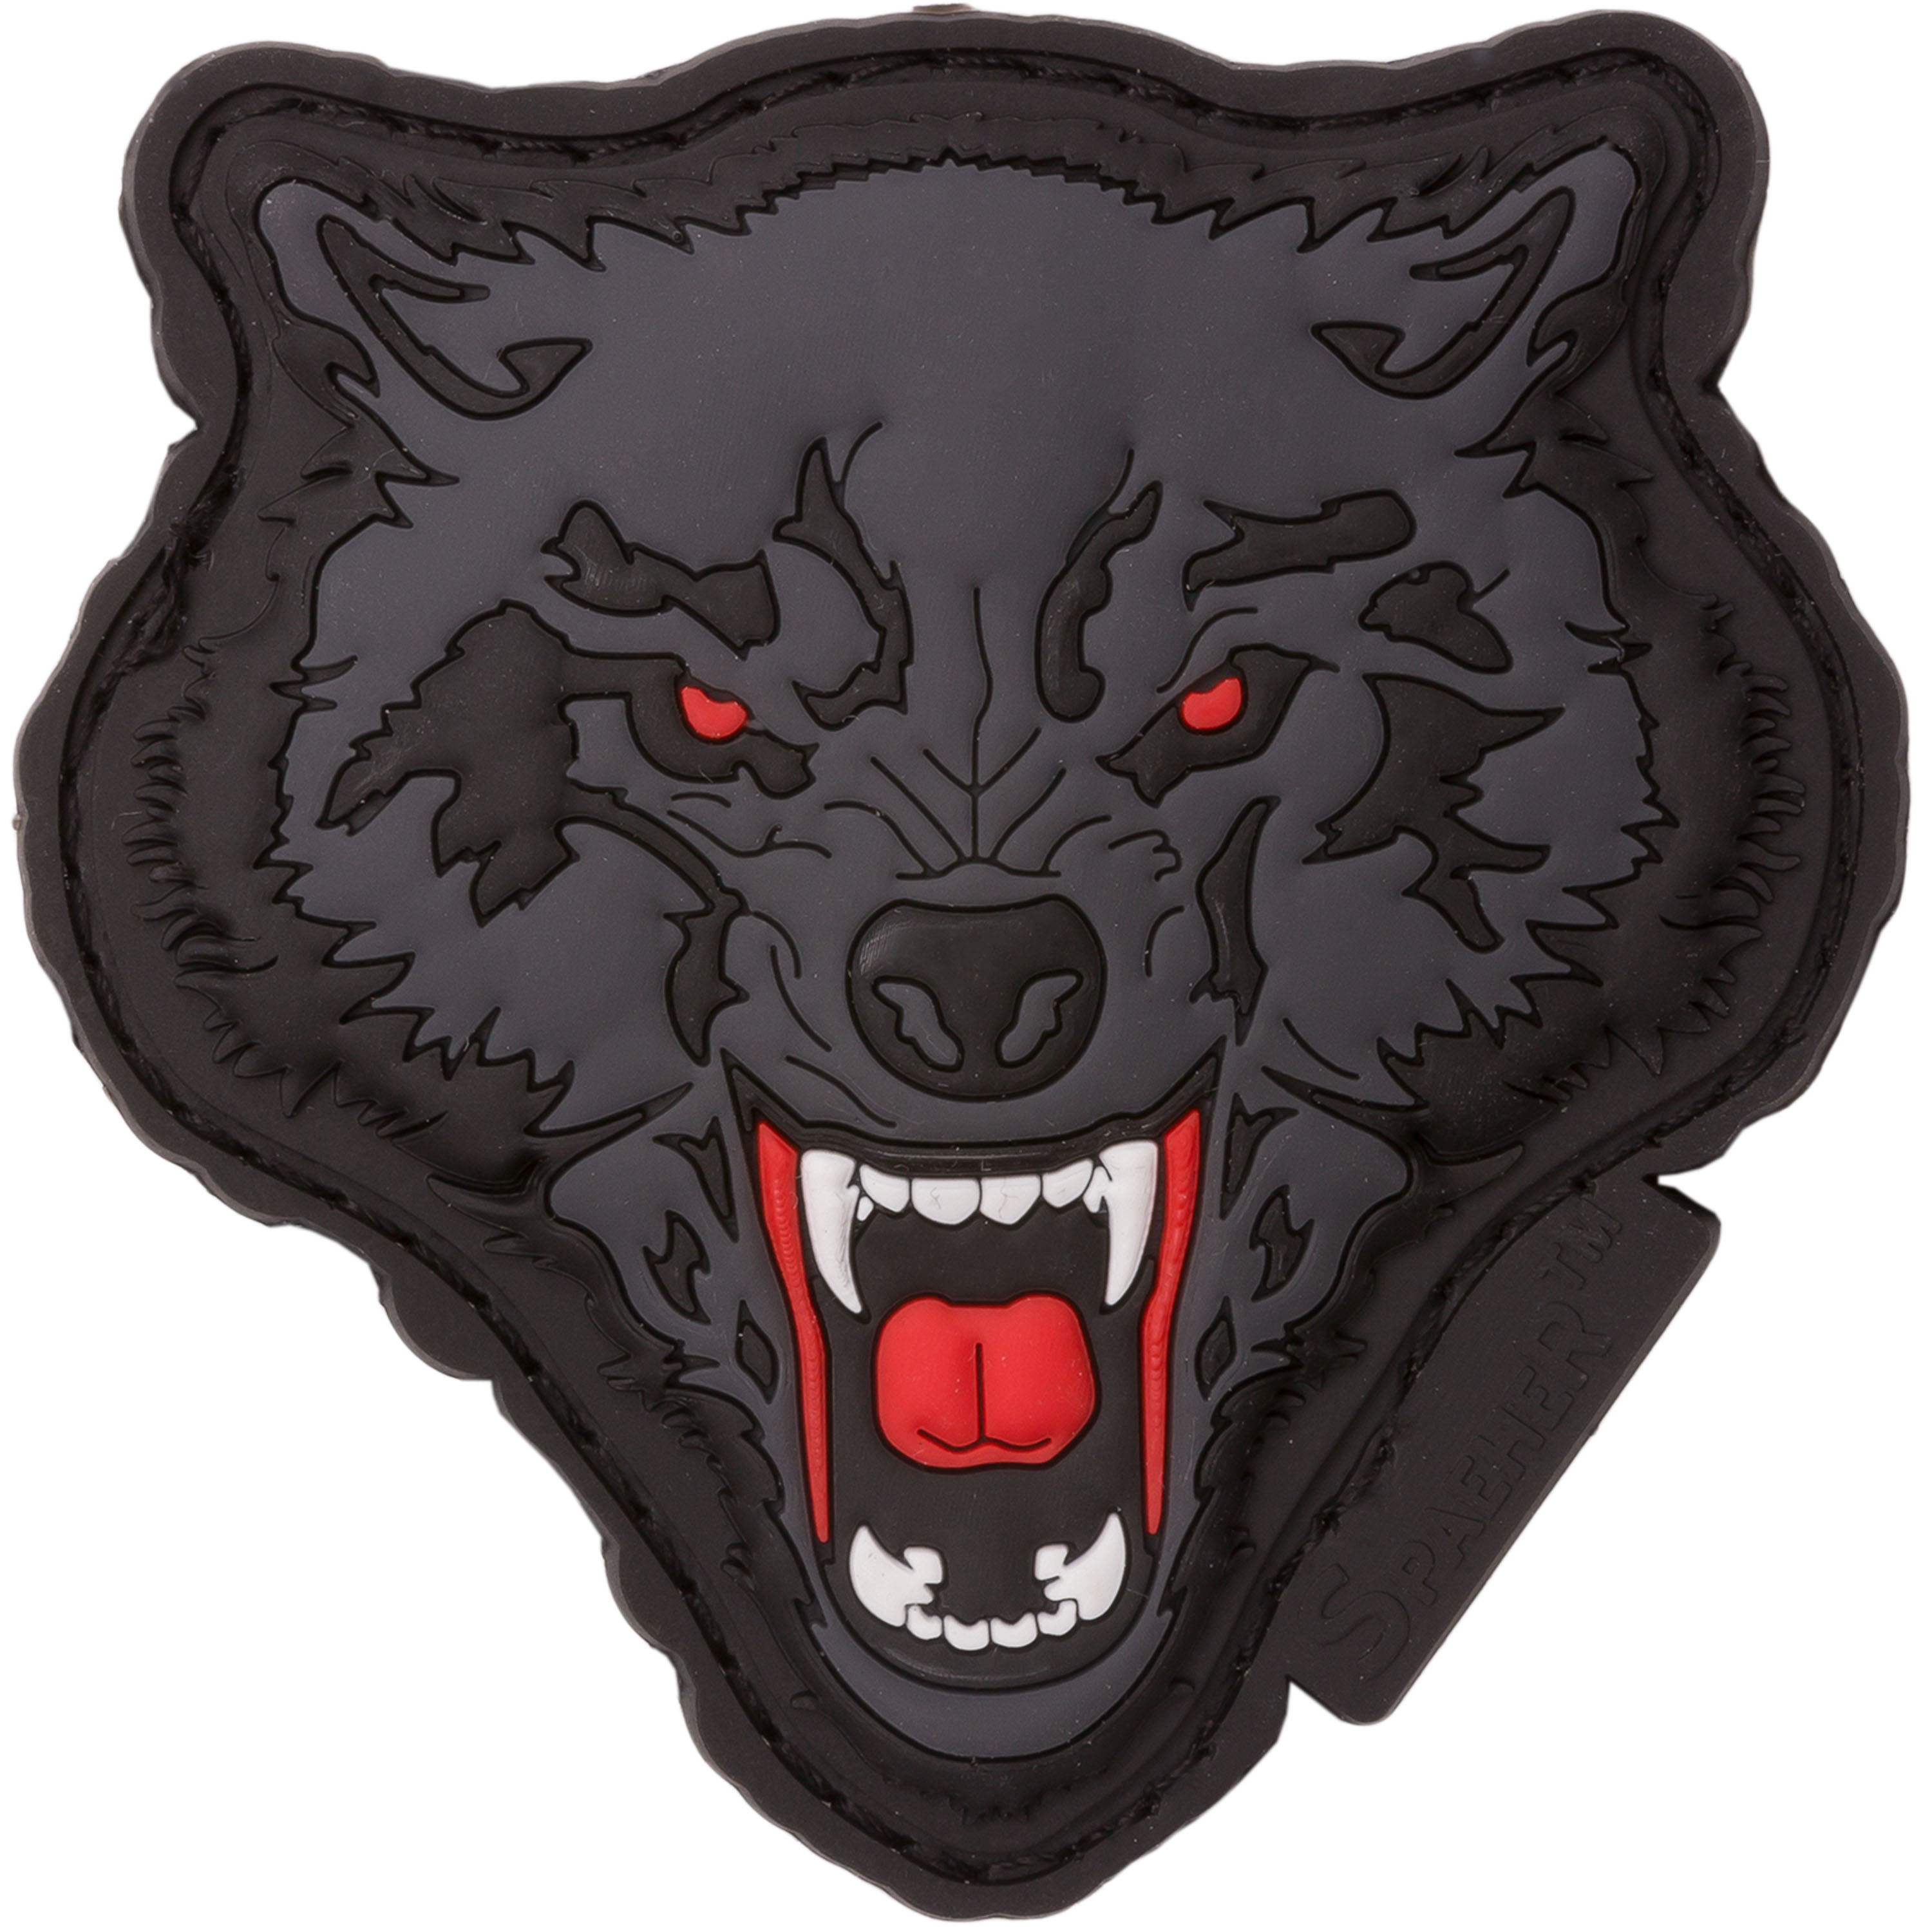 Jtg 3d Patch Angry Wolf Head Red Gray